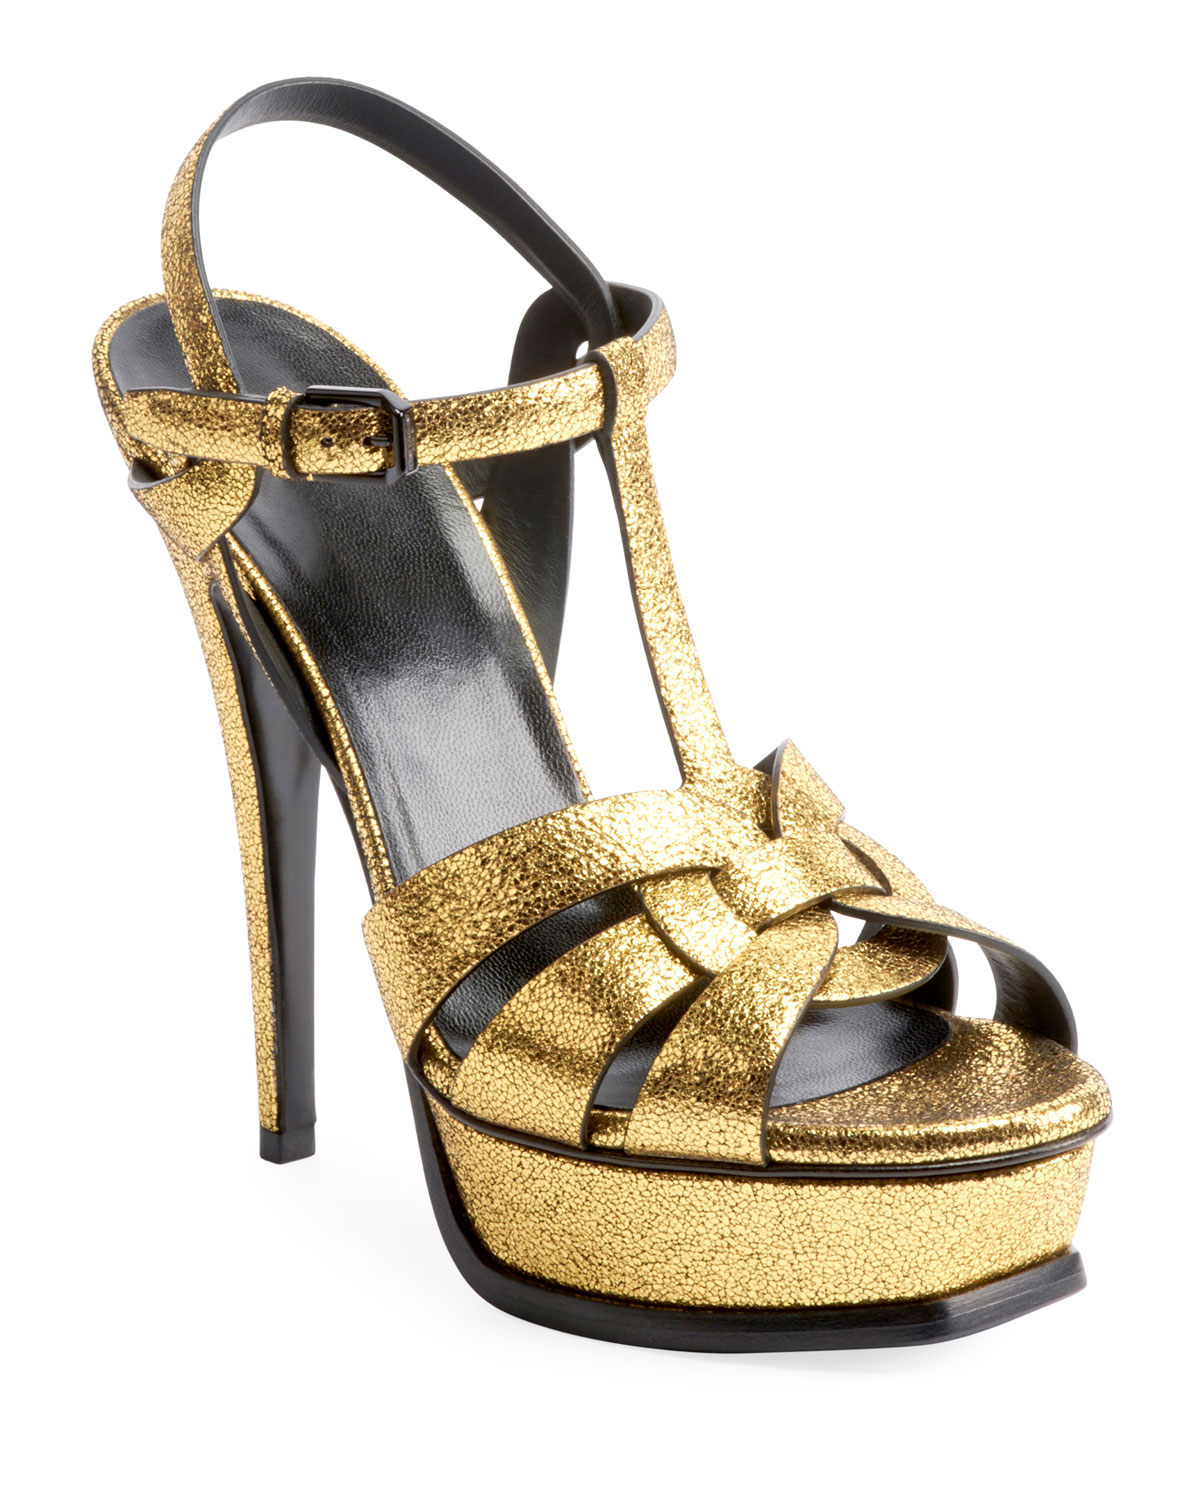 Tribute Leather Platform Sandals - Gold Size 11